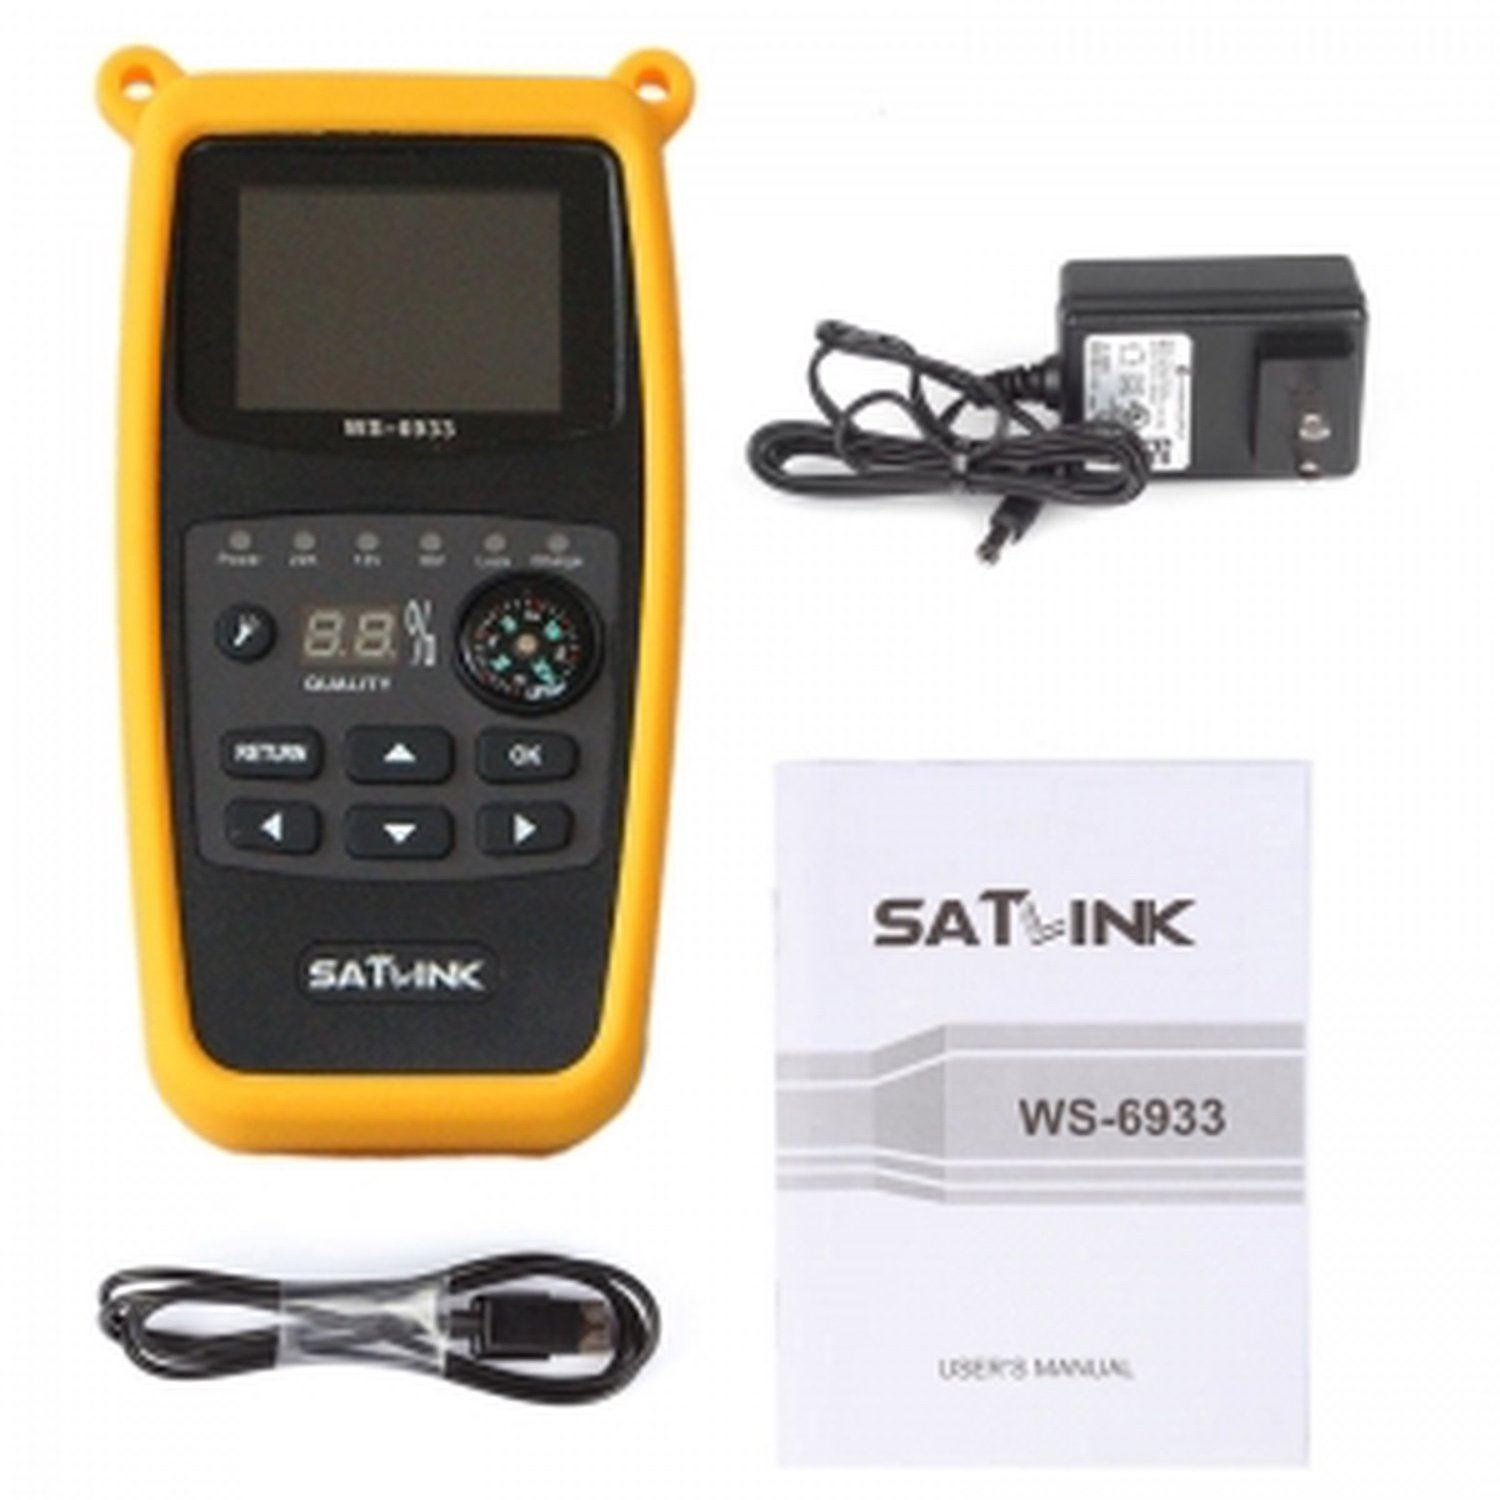 SatLink WS-6933 Ultra-Fast Compact HD DVB-S + DVB-S2 FINDER SATELLITE SIGNAL все цены